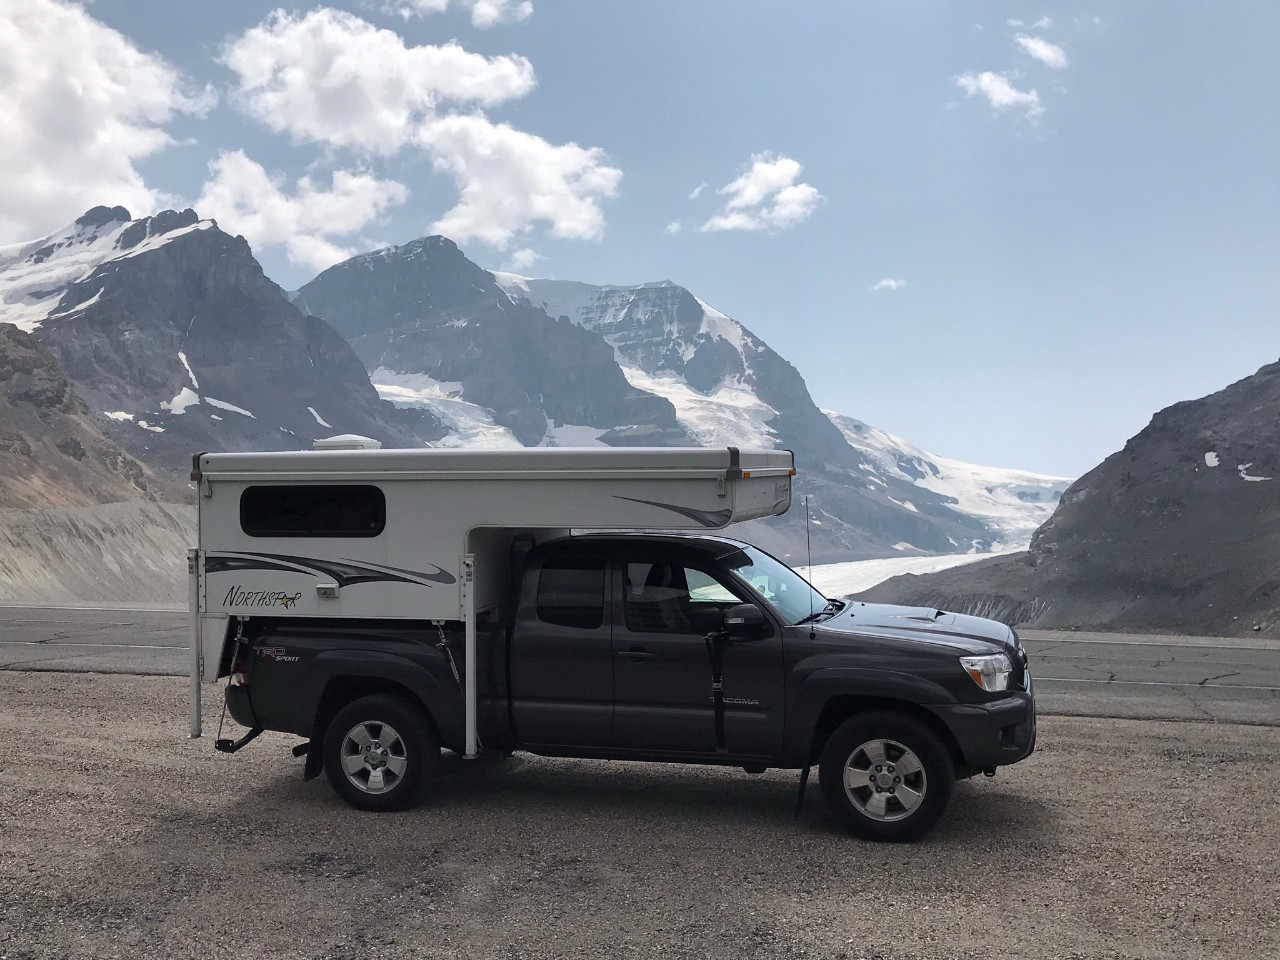 Northstar Truck Camper RVs For Sale: 105 RVs - RVTrader.com